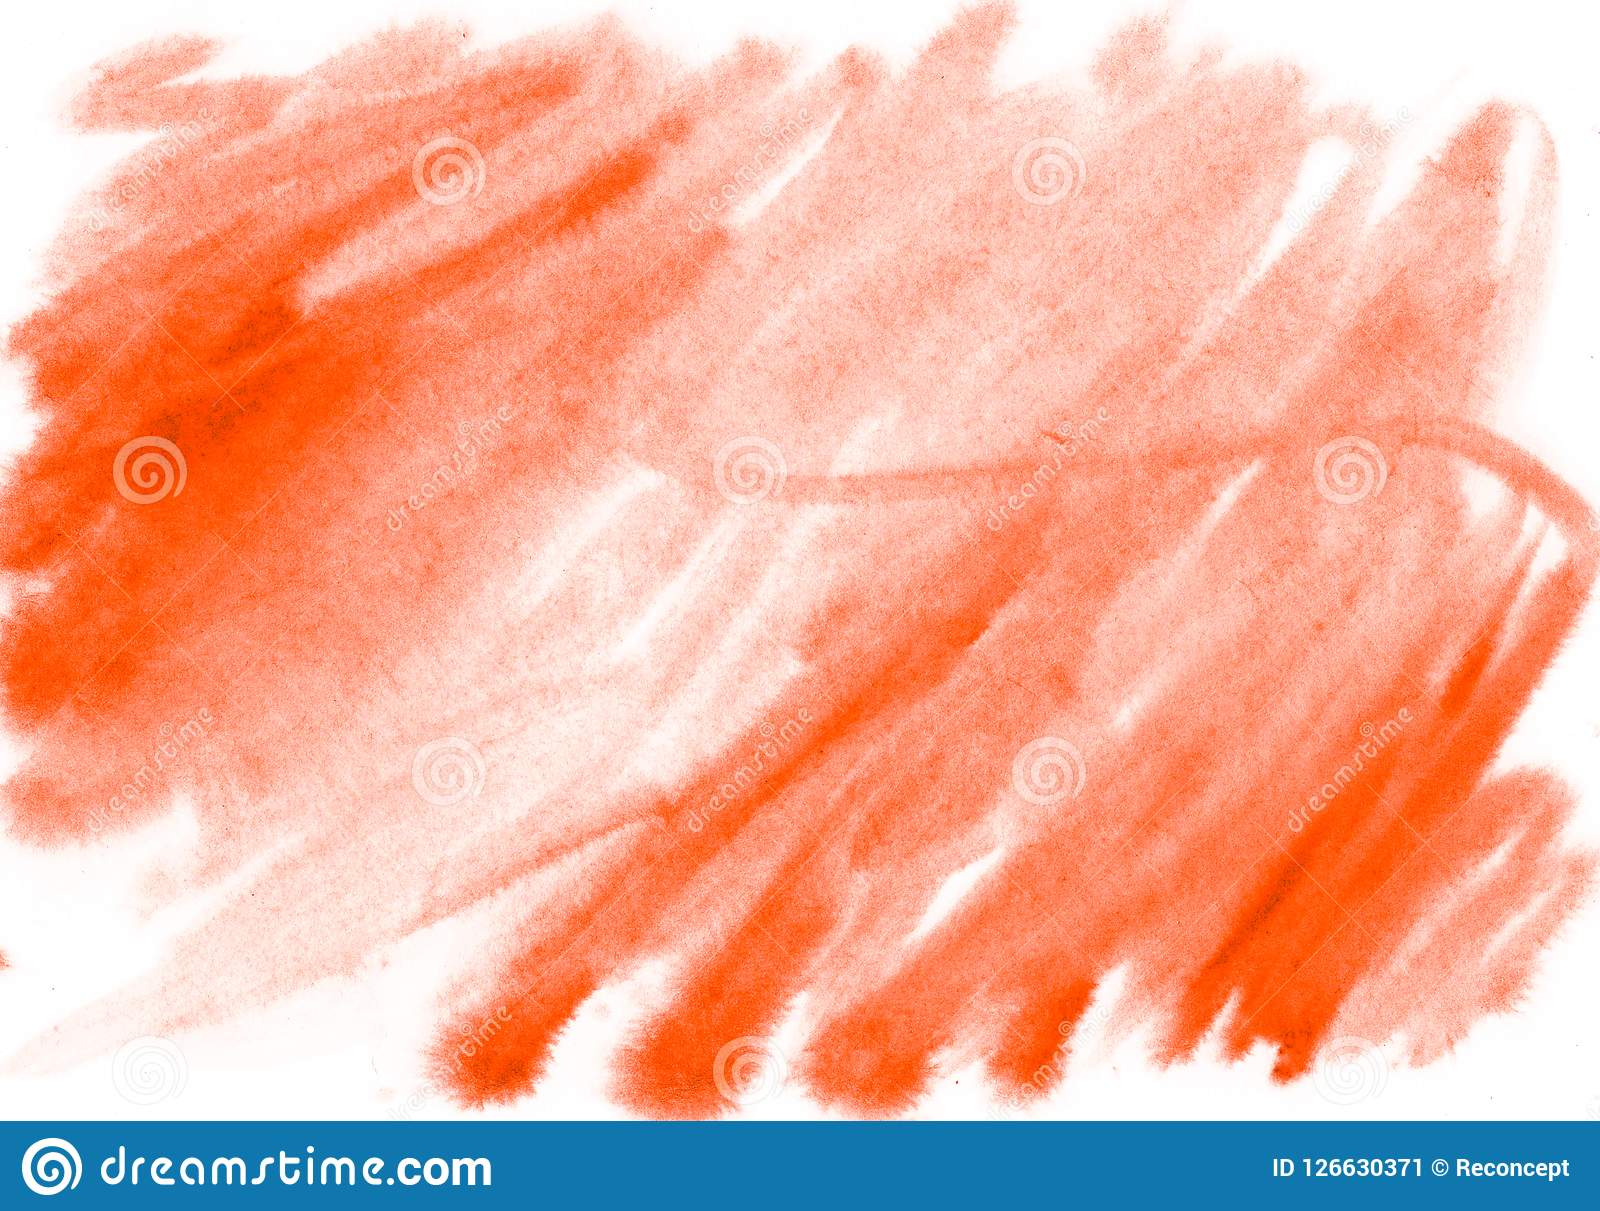 Abstract Orange Watercolor On White Background The Color